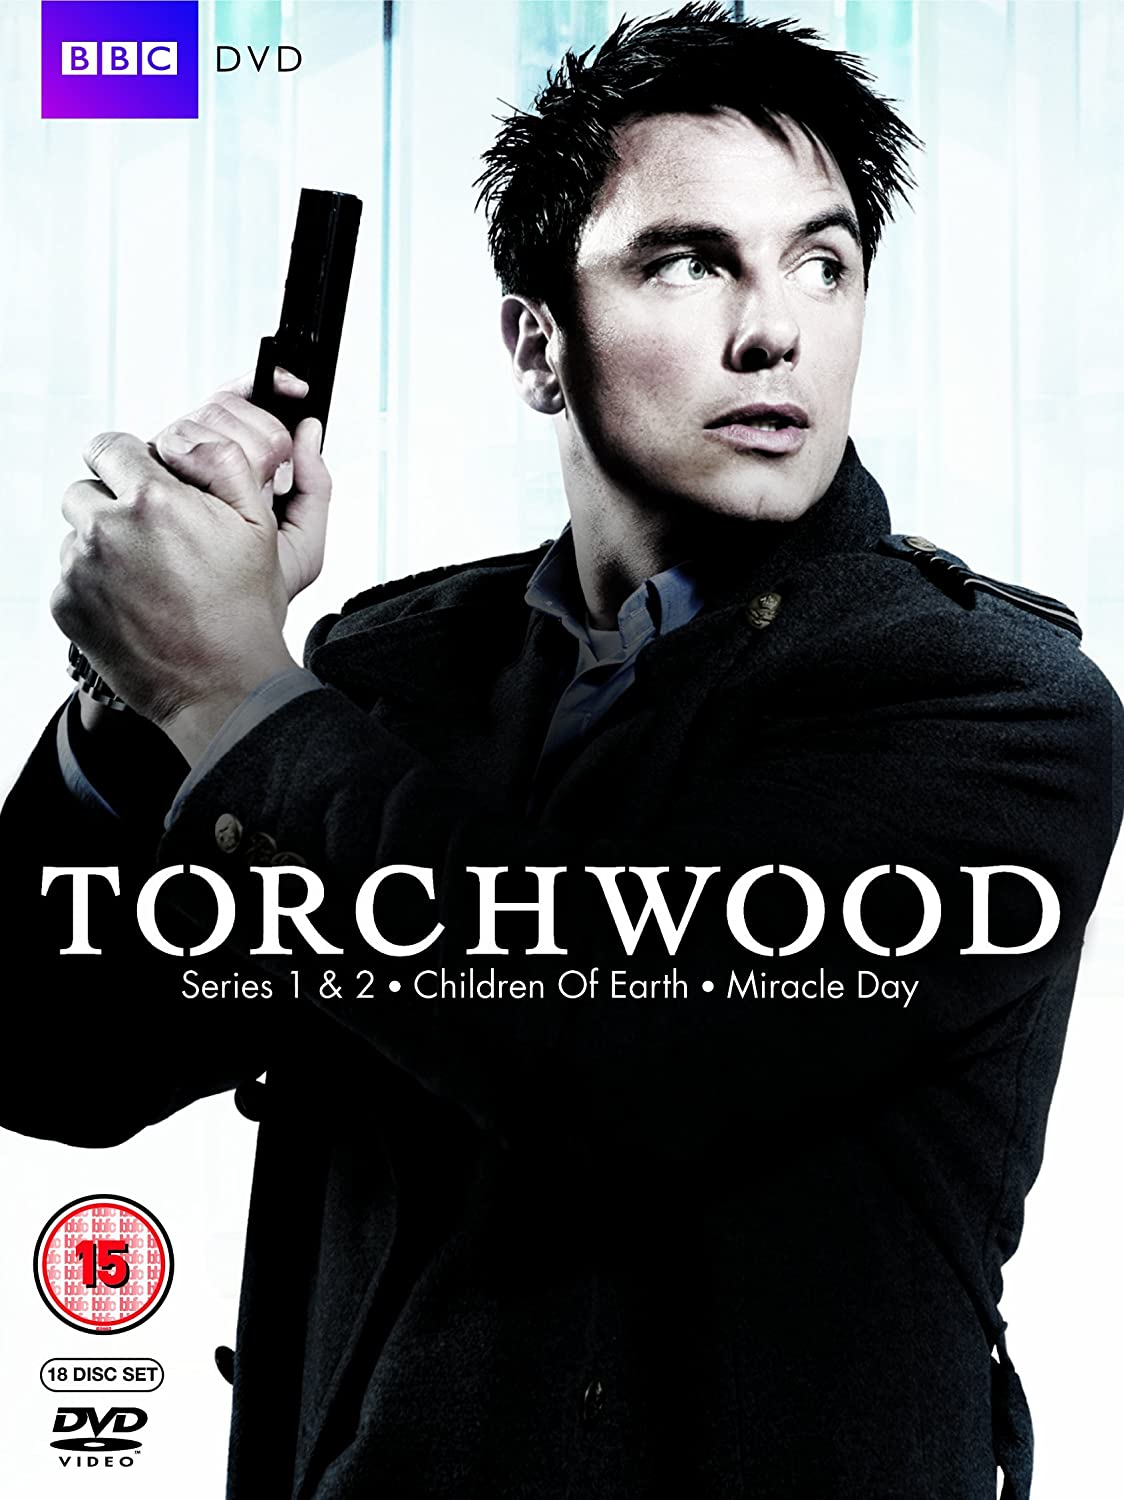 Torchwood - Series 1-4 [DVD] [2012]